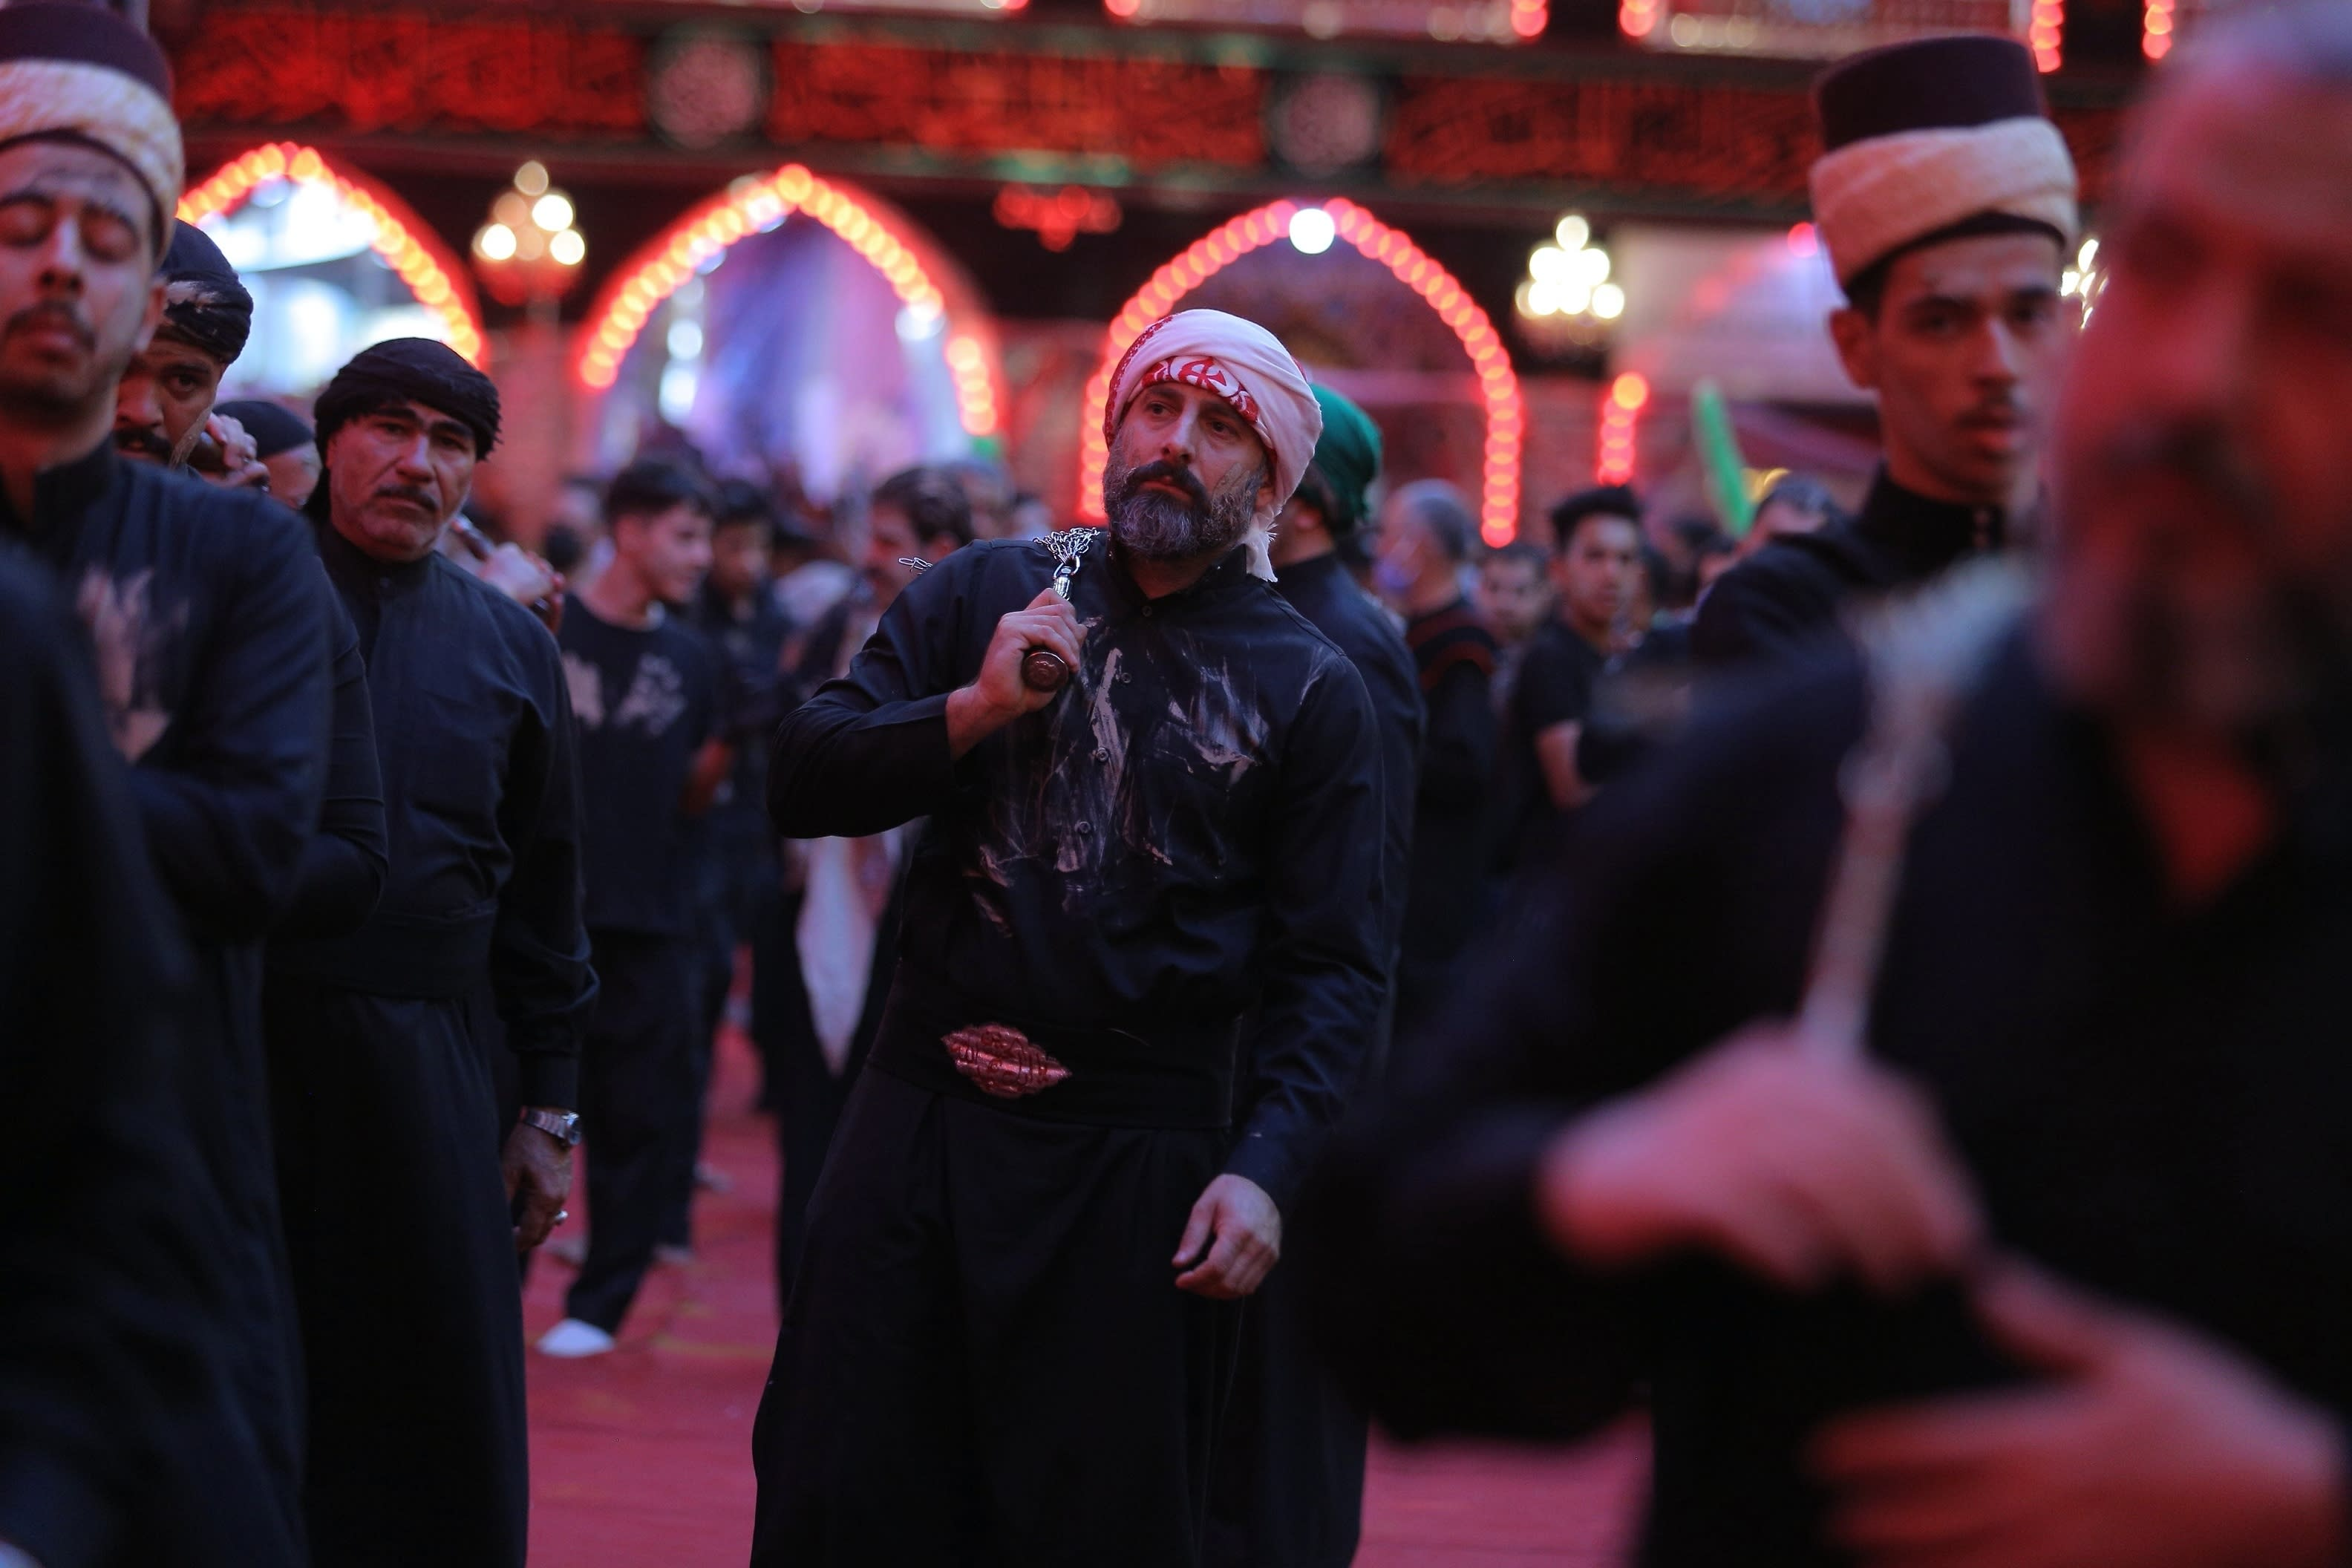 Shiite Muslim worshippers perform their rituals inside the holy shrine of Imam Hussein during the Muharram procession in Karbala, Iraq, Saturday, Aug. 29, 2020. Saturday, Aug. 29, 2020. The holiday marks the end of the forty day mourning period after the anniversary of the martyrdom of Imam Hussein, the Prophet Muhammad's grandson in the 7th century. (AP Photo/Anmar Khalil)